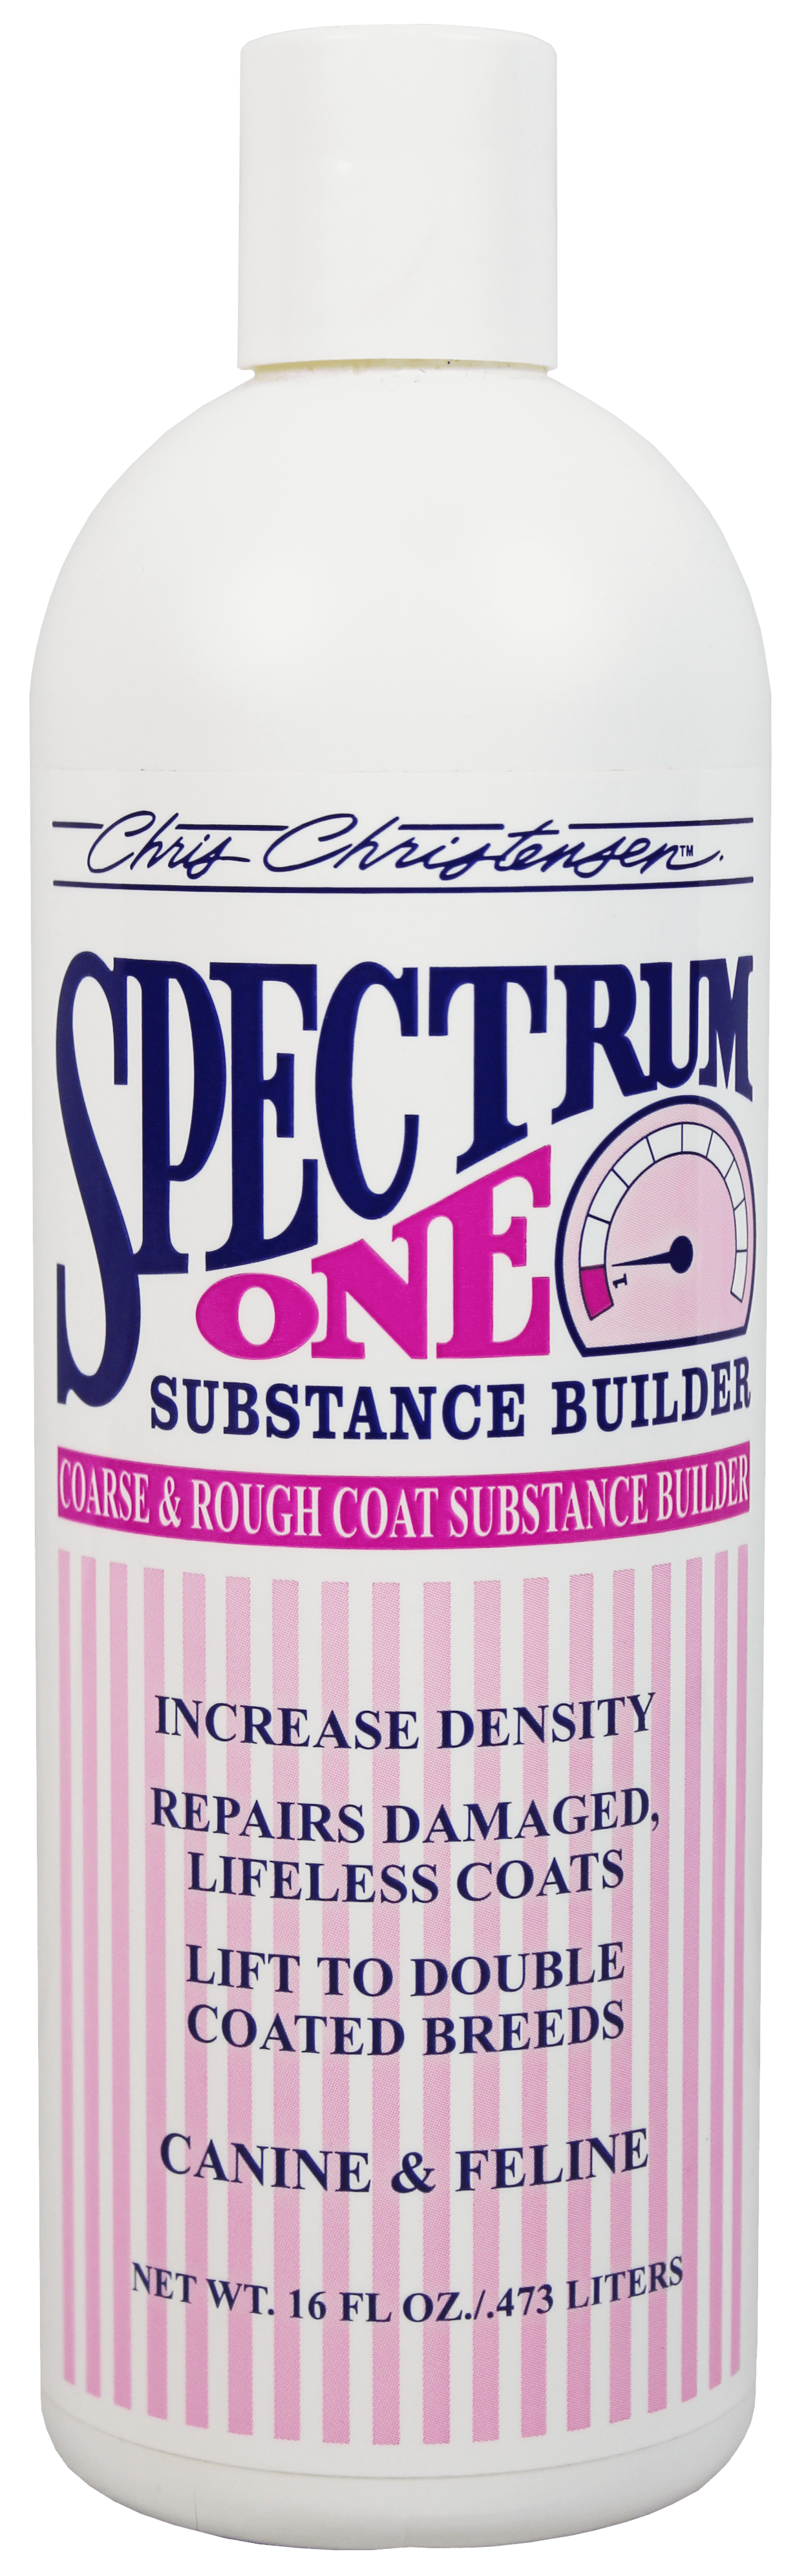 CC - Spectrum One Substance Builder